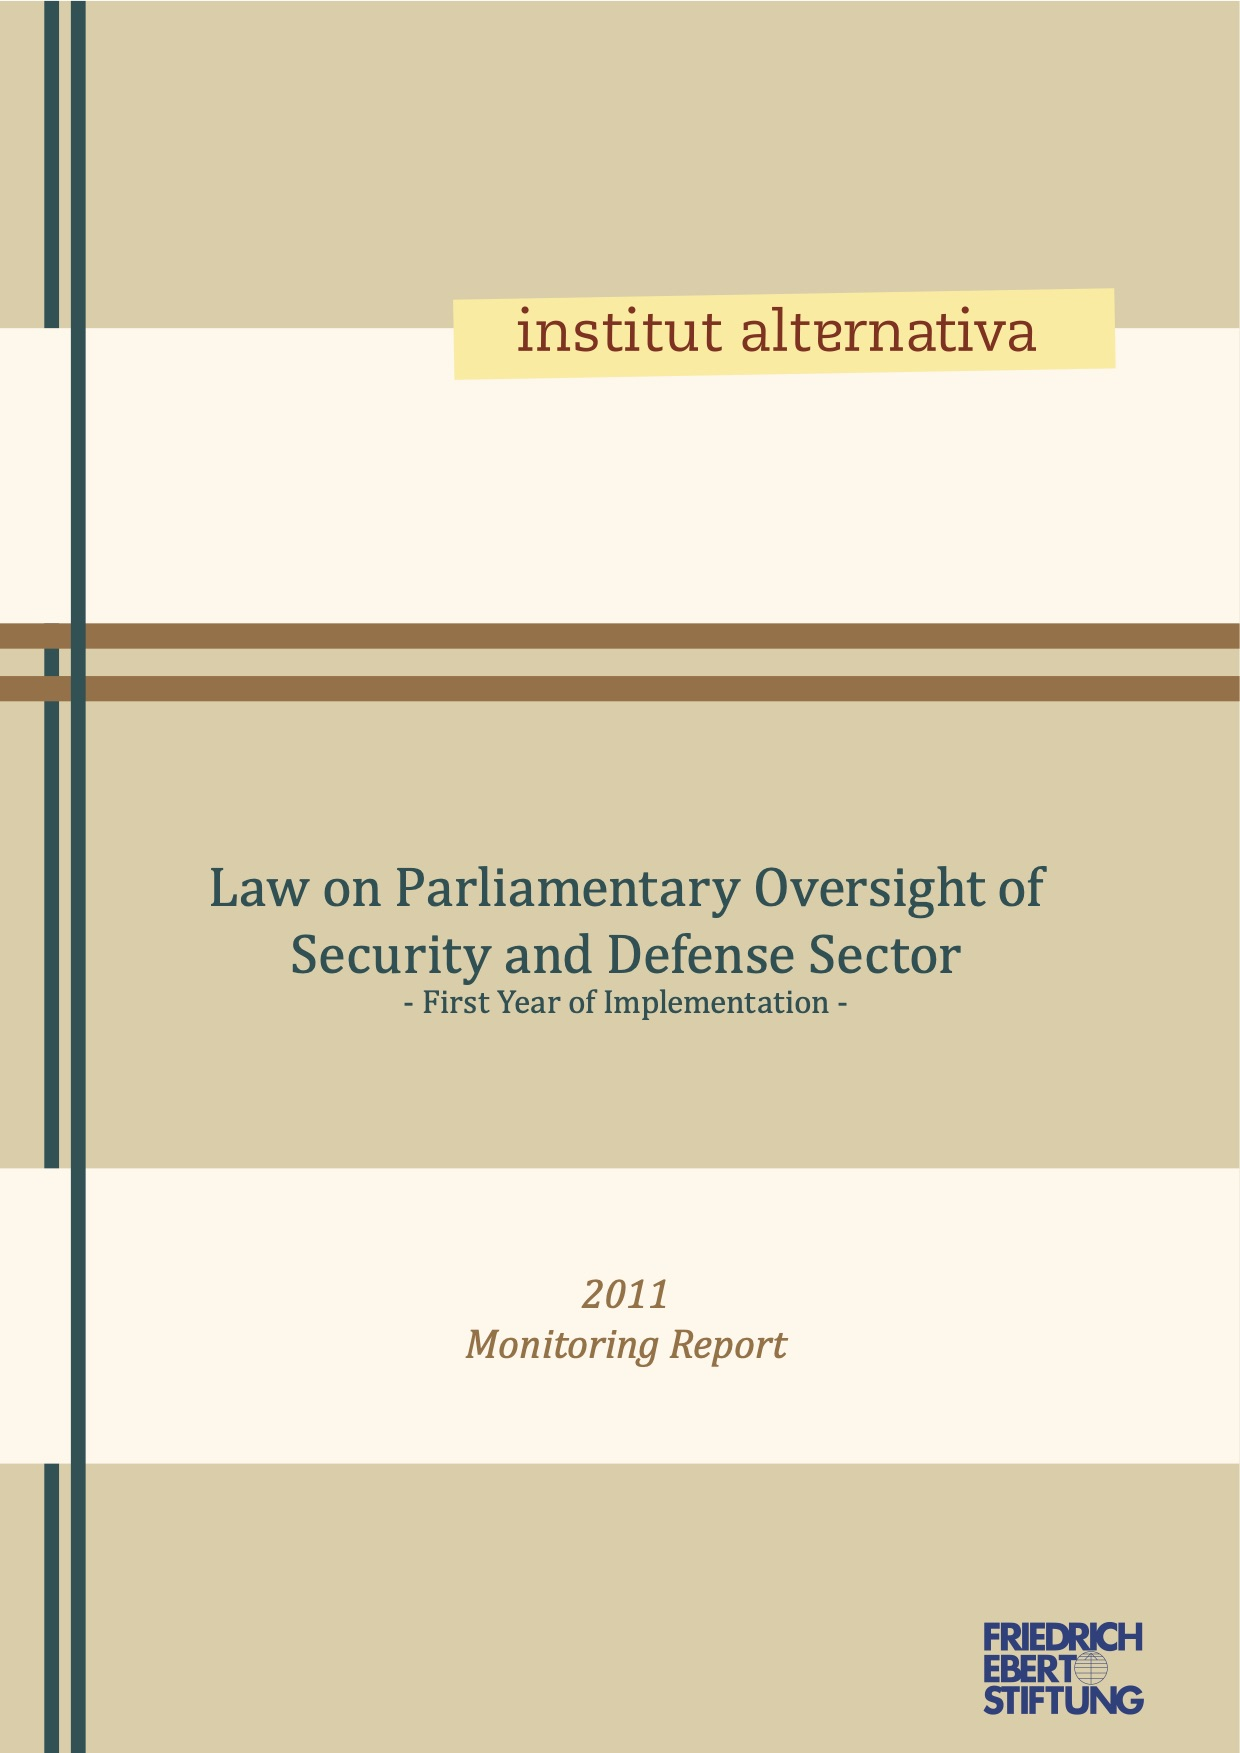 Law on Parliamentary Oversight of Security and Defense Sector - First Year of Implementation